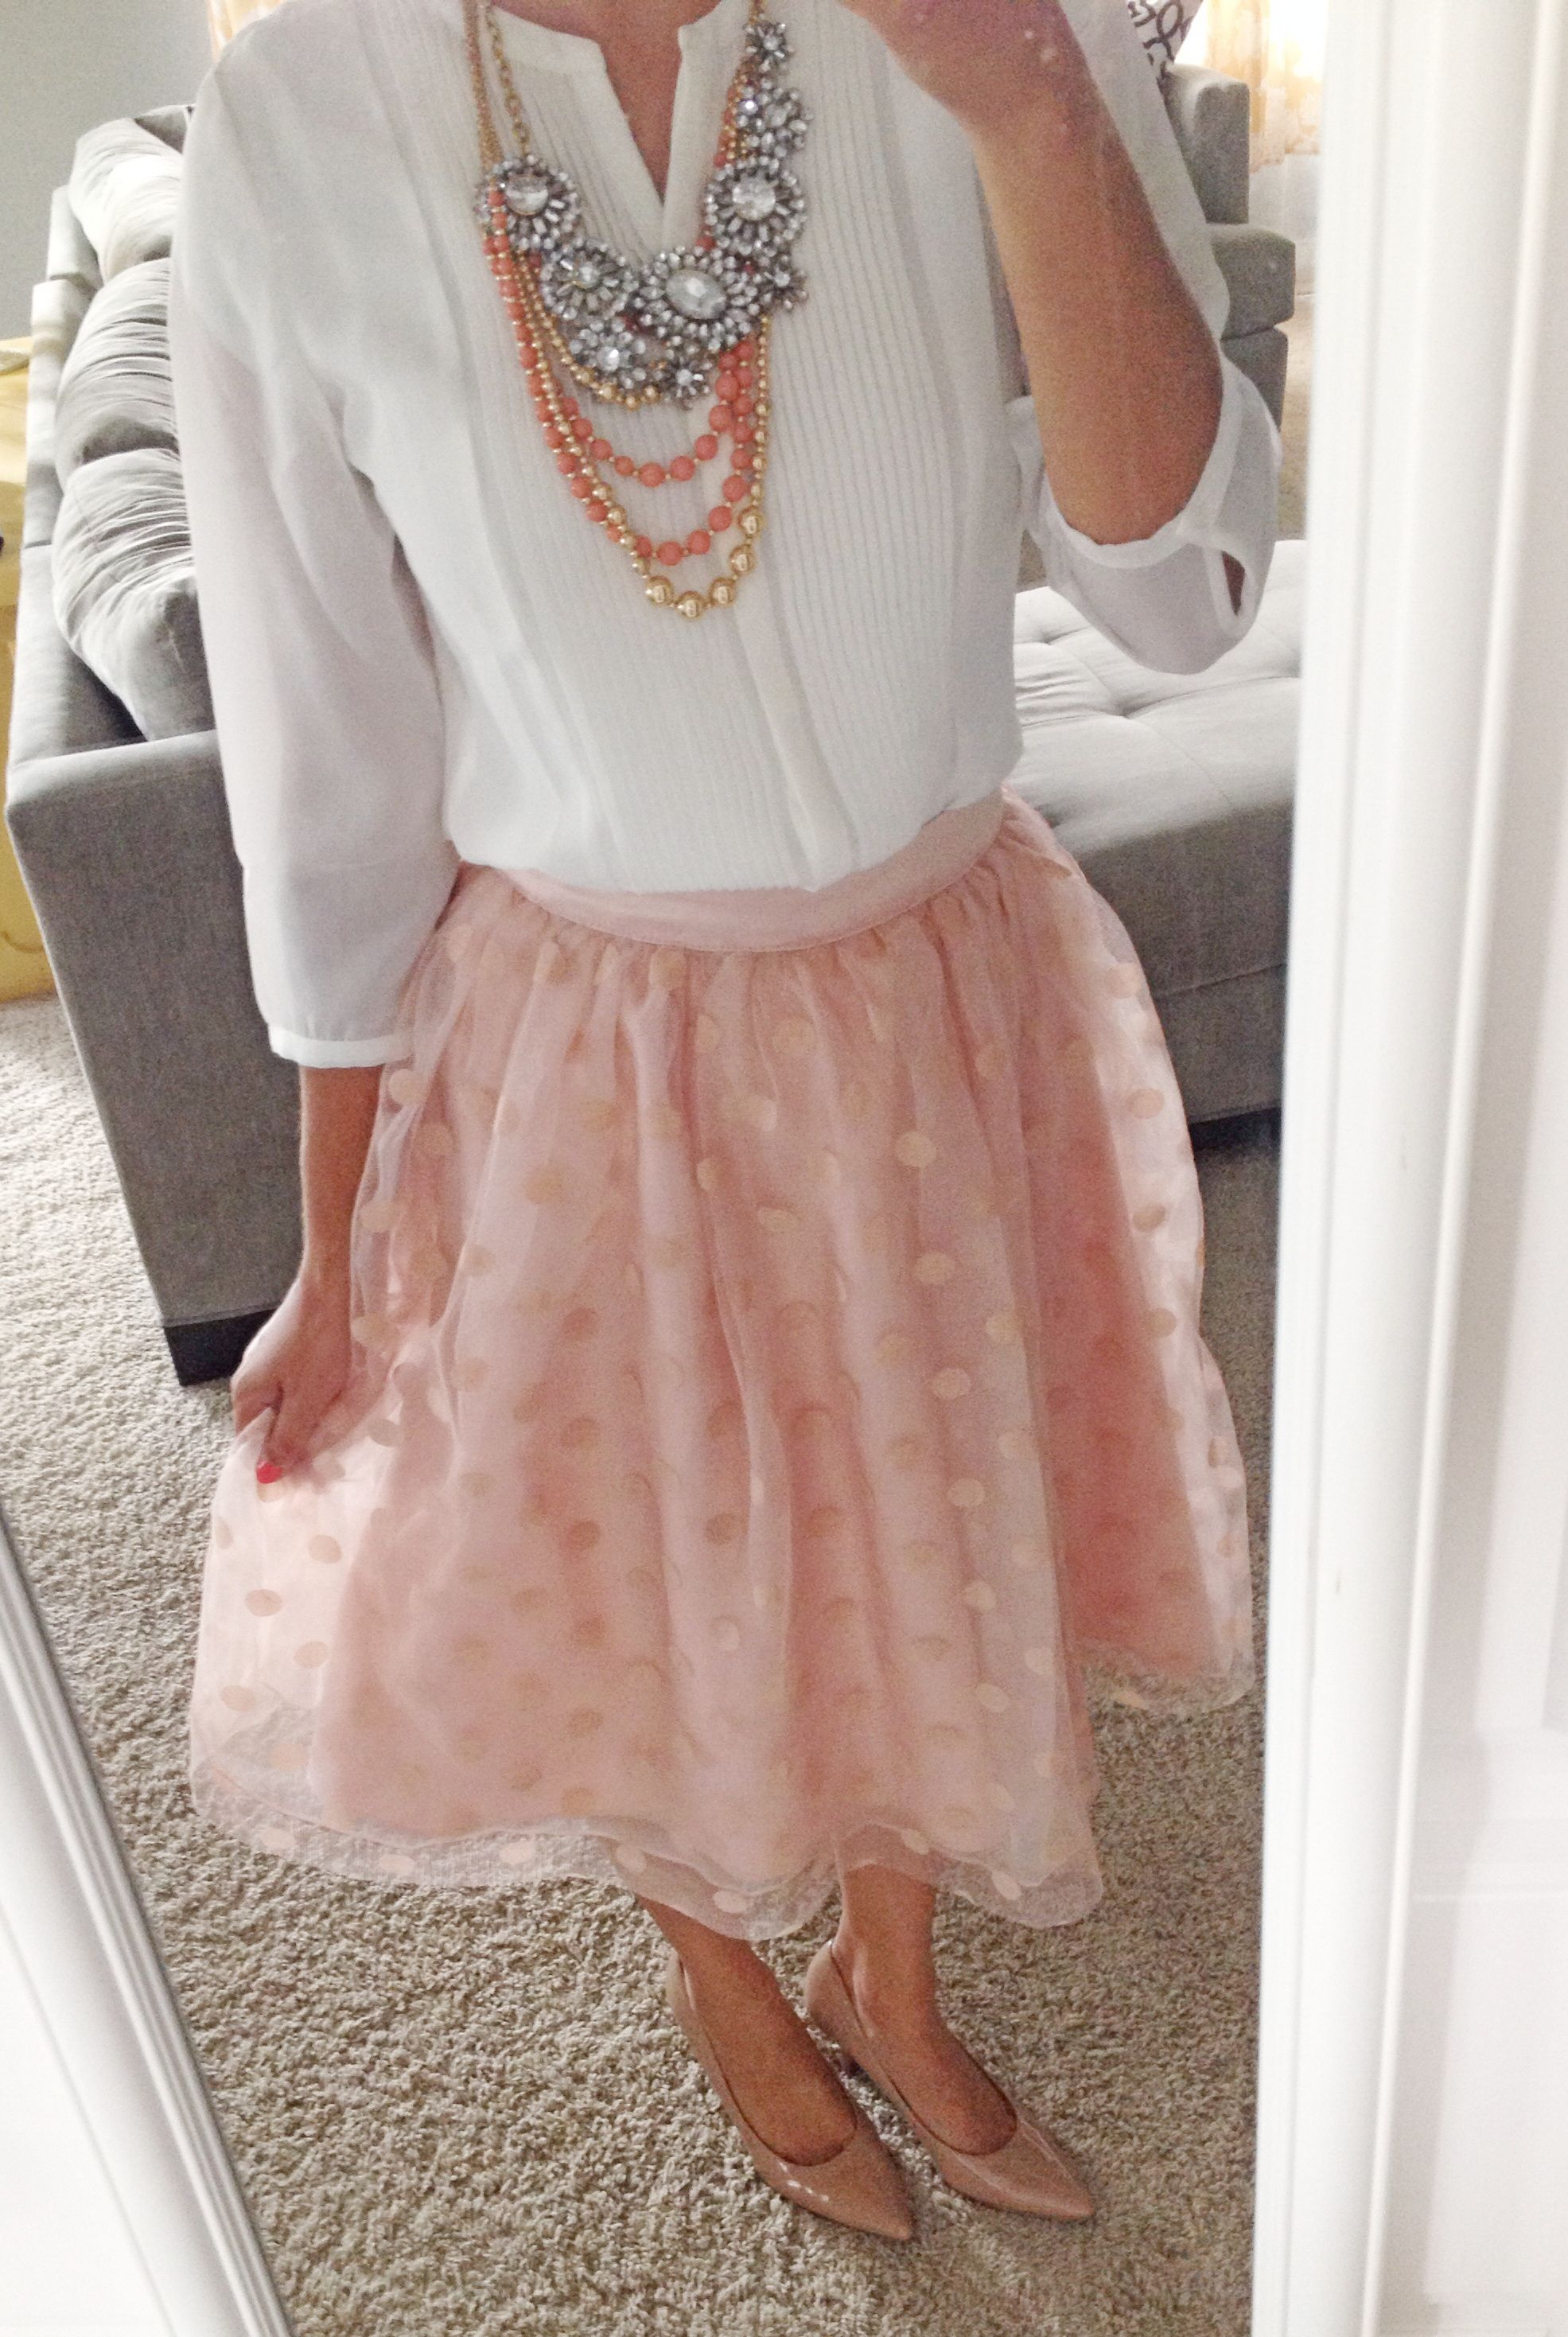 Follow me, Amber, with Dressing Up Classy for outfit details and fashion finds…